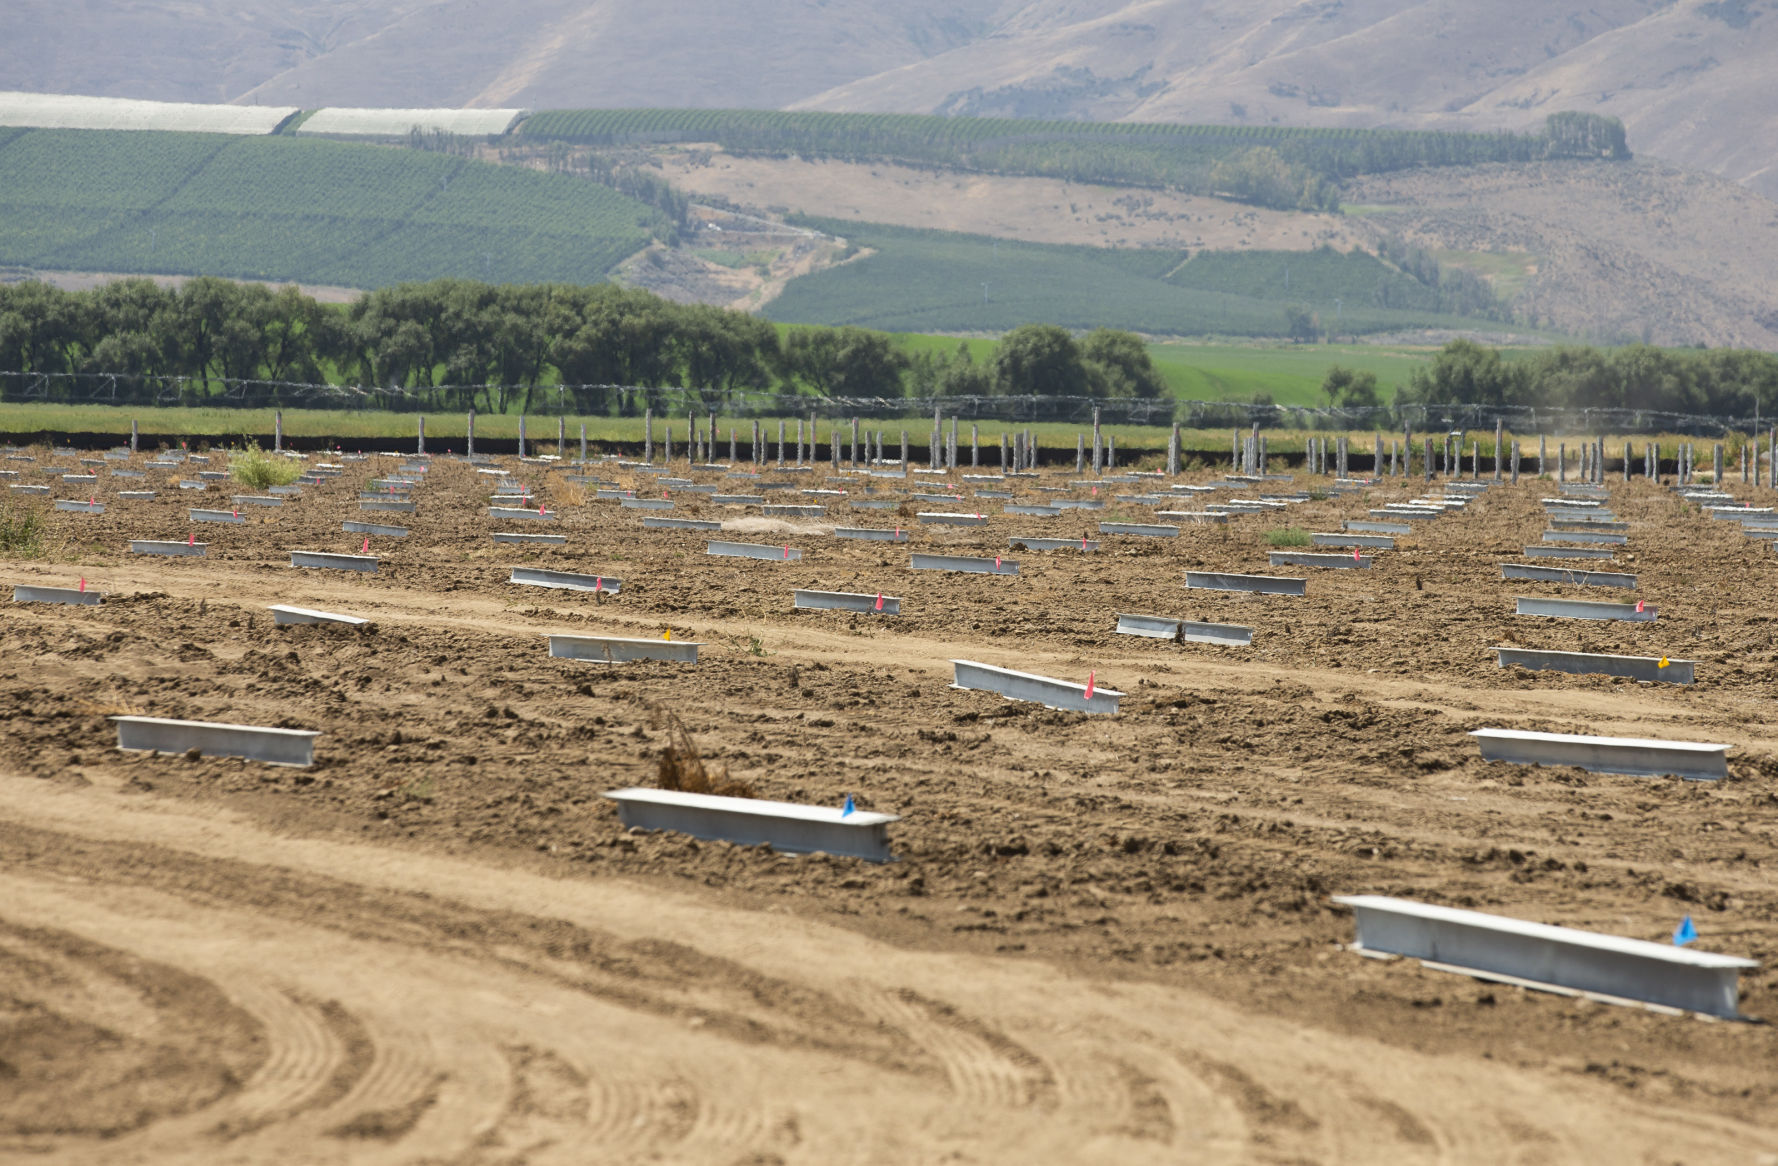 While Central Washington is known for its hops, apples and cherries, it is also becoming a producer of renewable energy